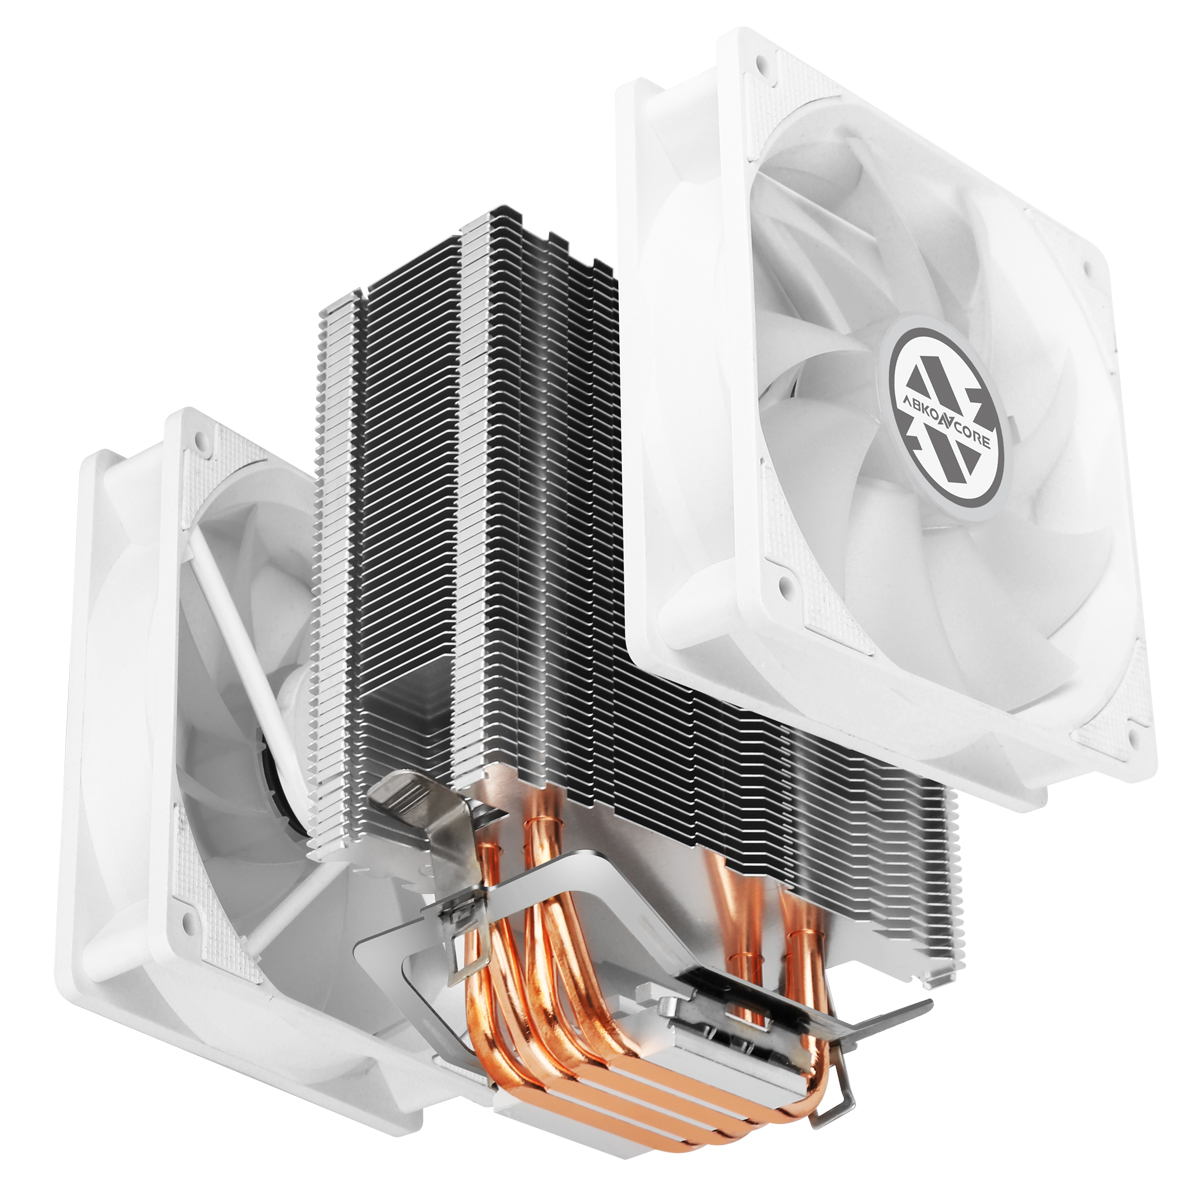 CPU Cooler T406 W doble componentes